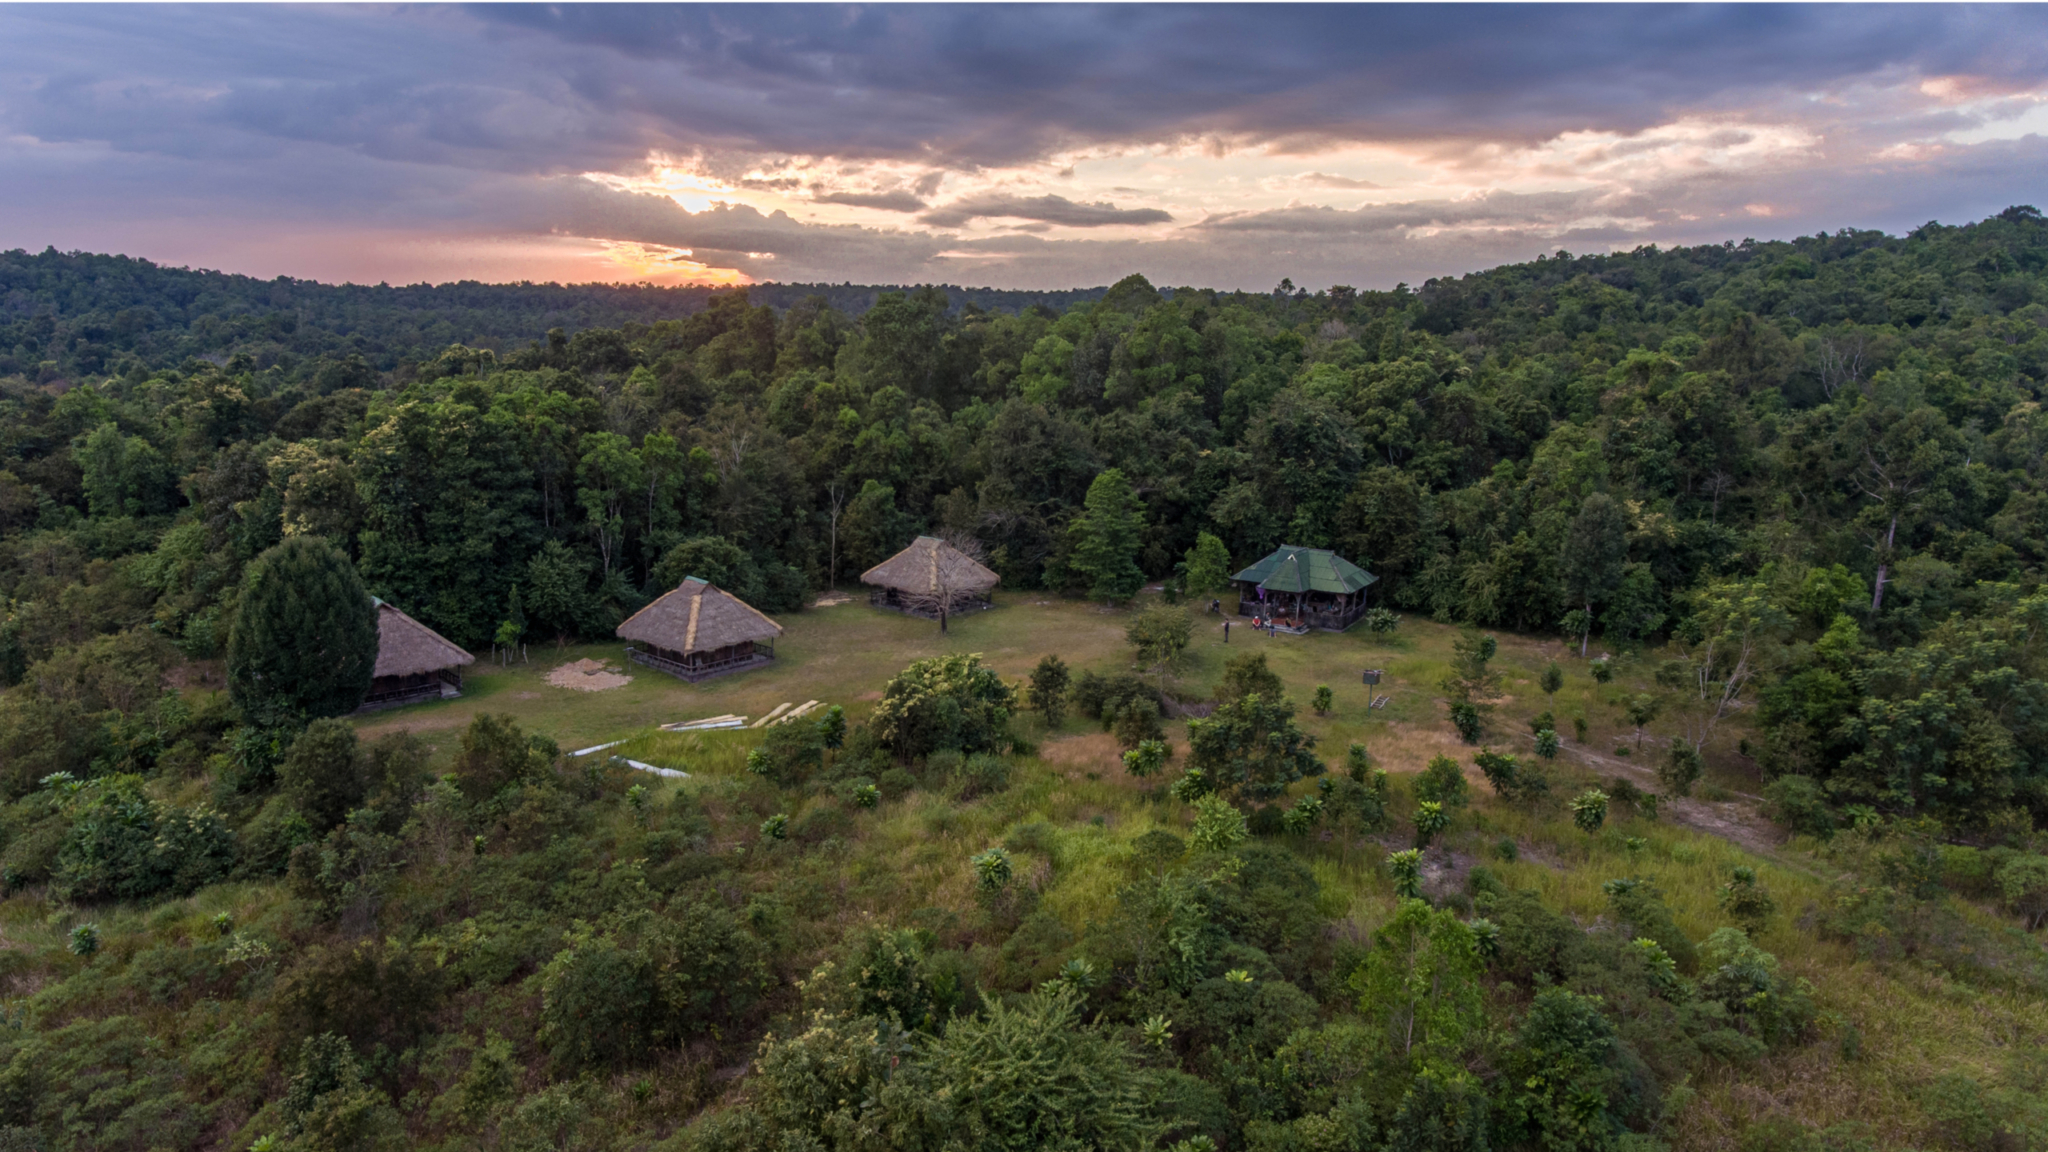 Adventure awaits in the Amazon of Asia!